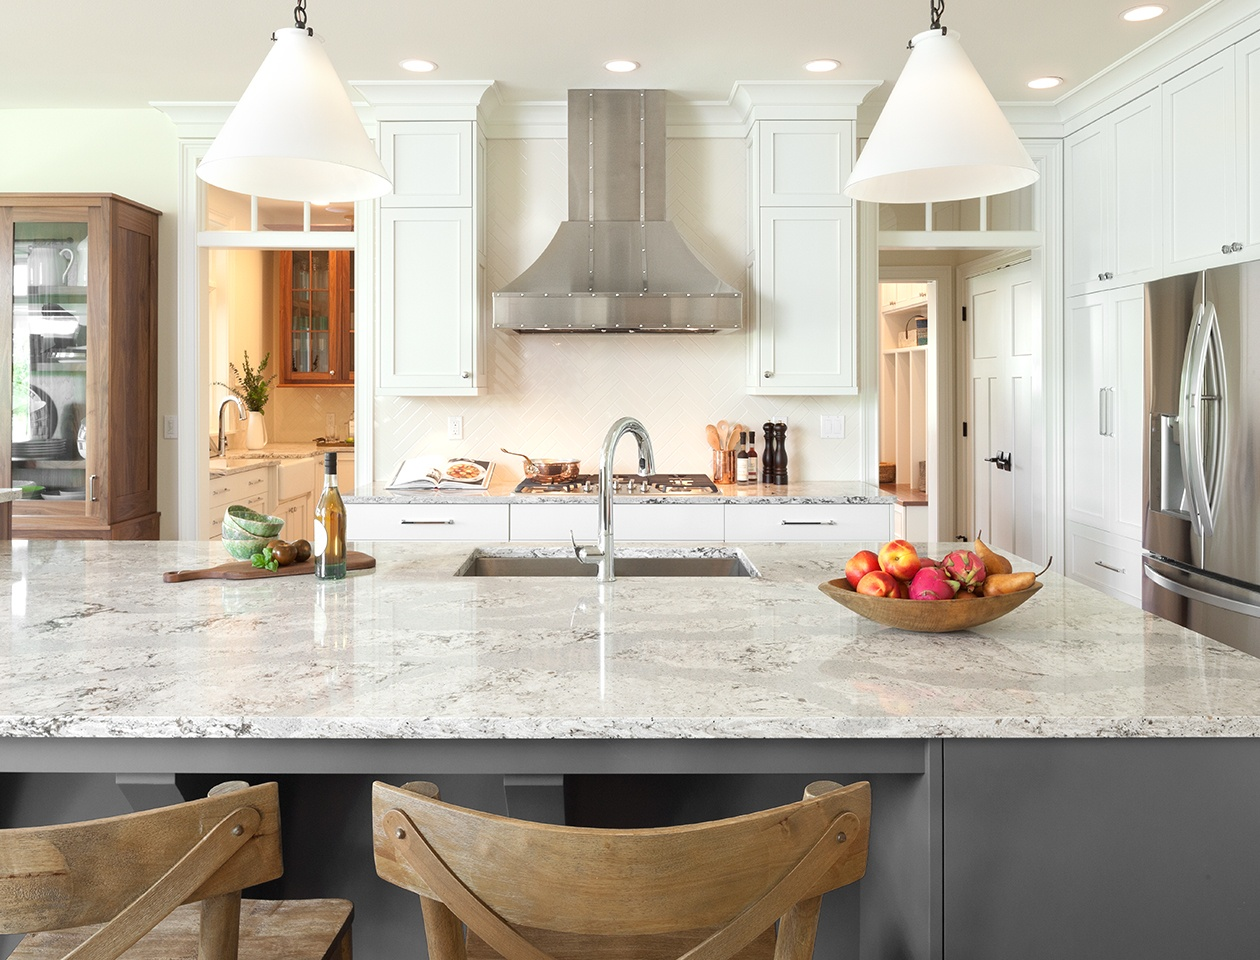 Kitchen Countertops Quartz 15 stunning quartz countertop colors to gather inspiration from